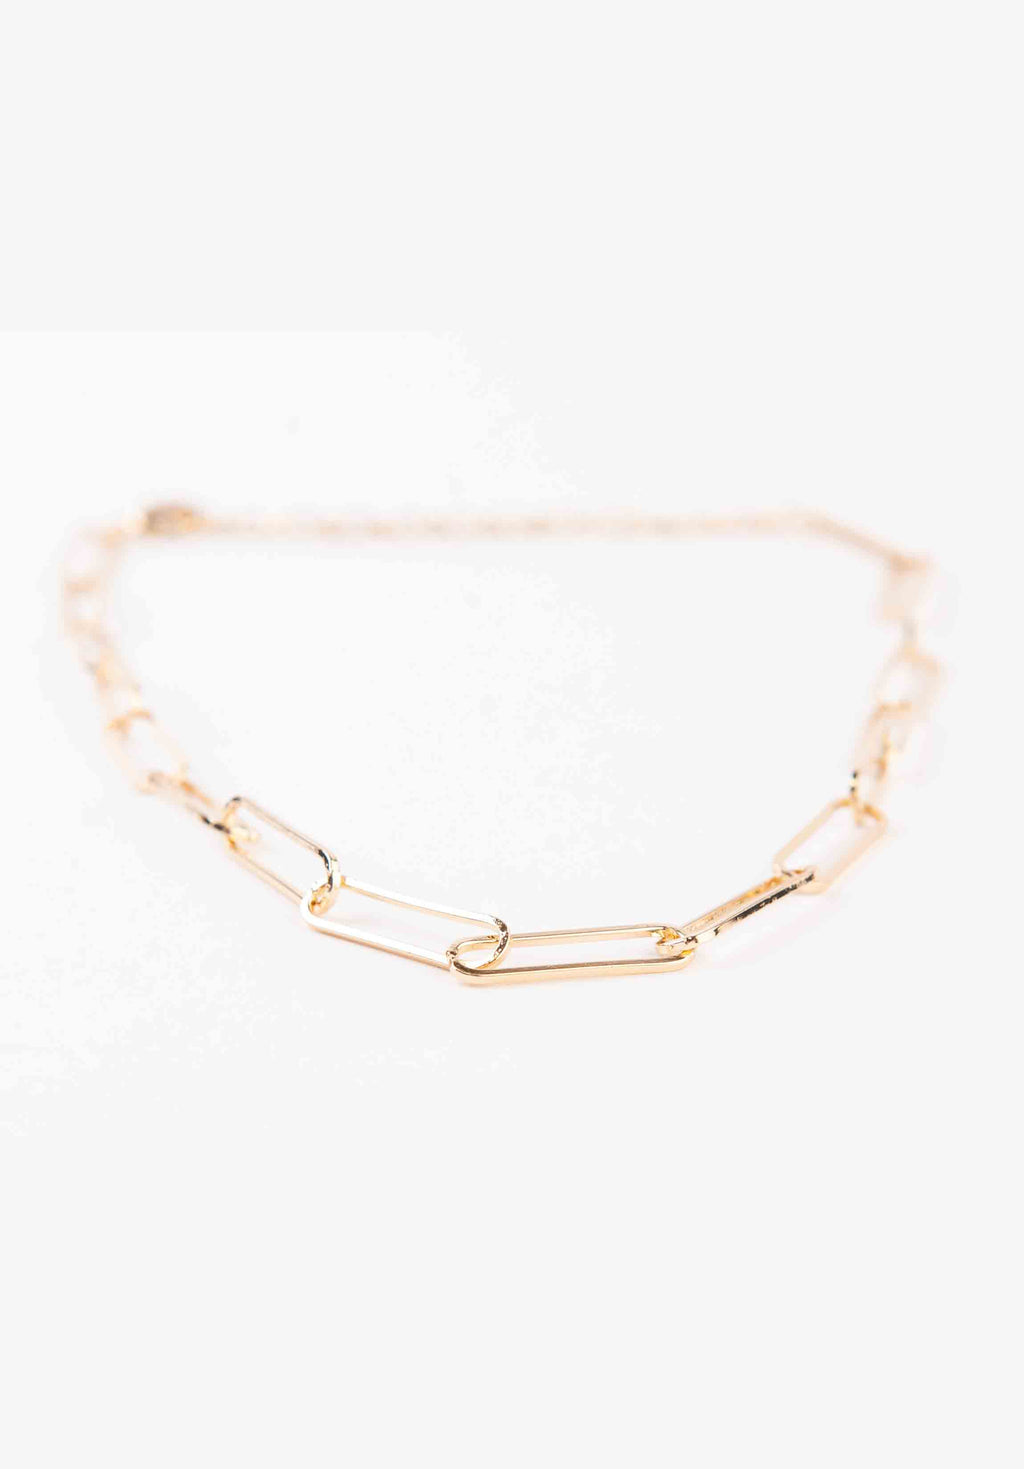 PAPER CLIP LINK NECKLACE | GOLD